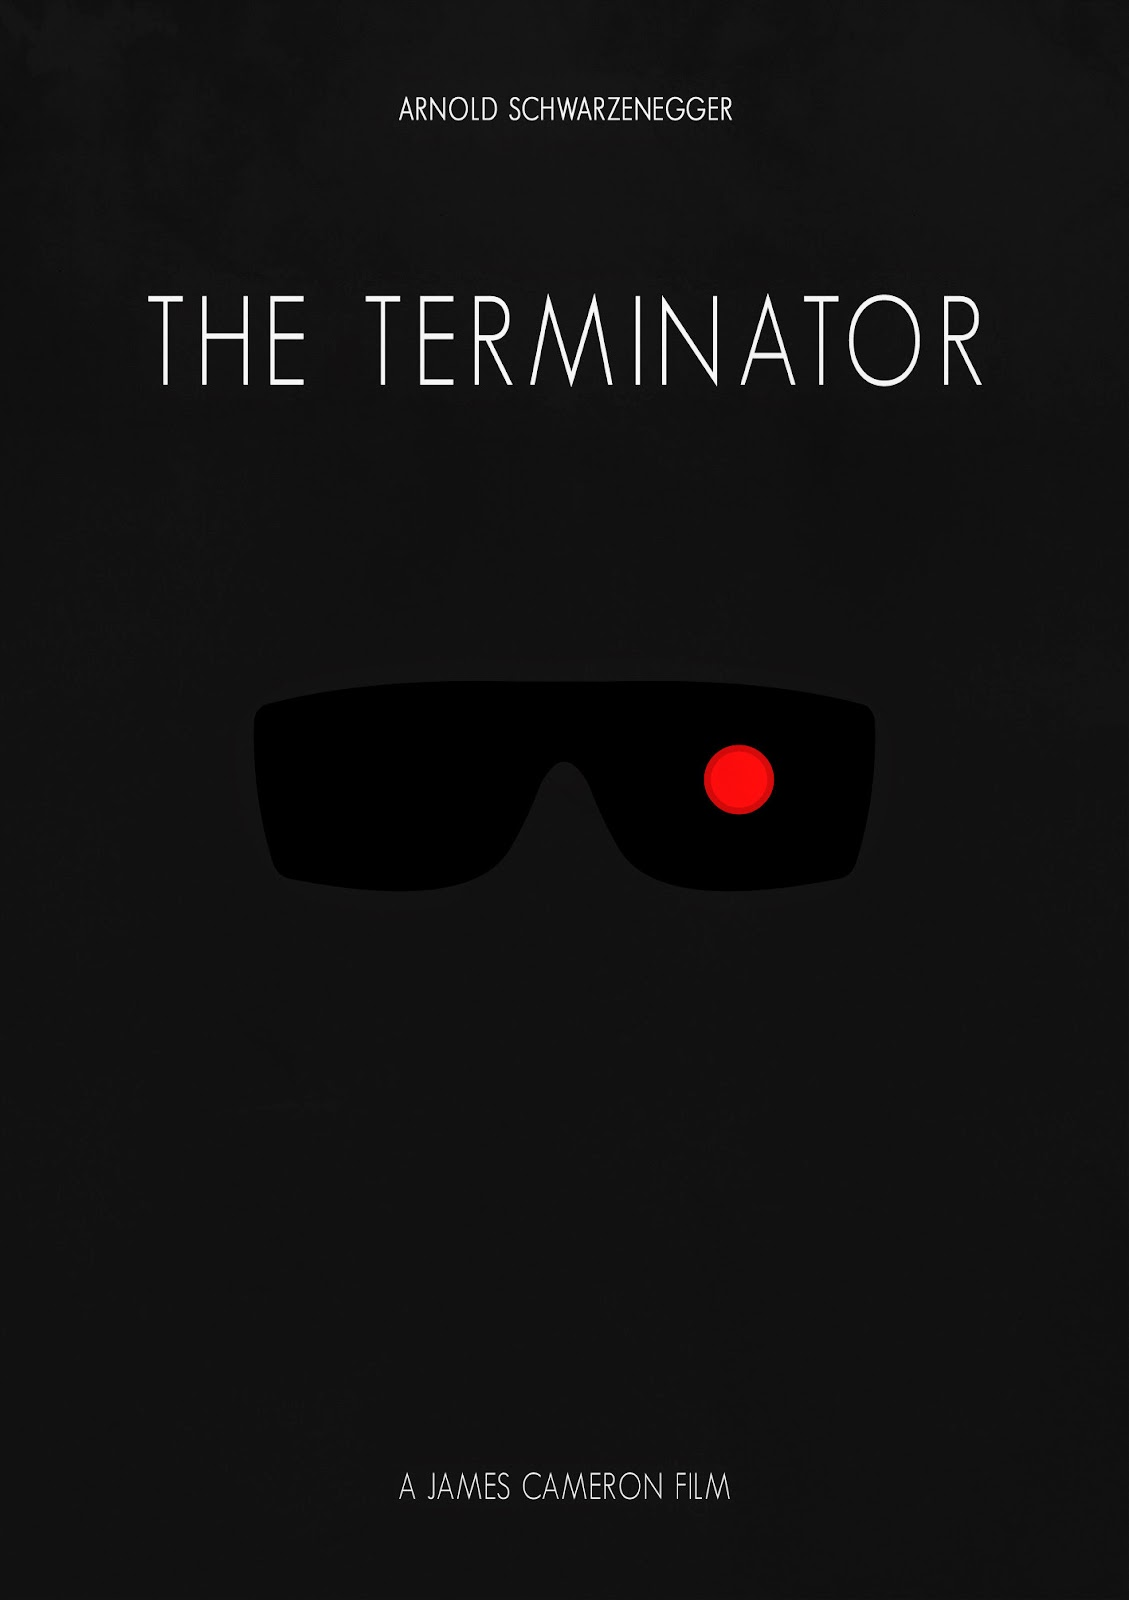 Minimalist Movie Posters The Terminator